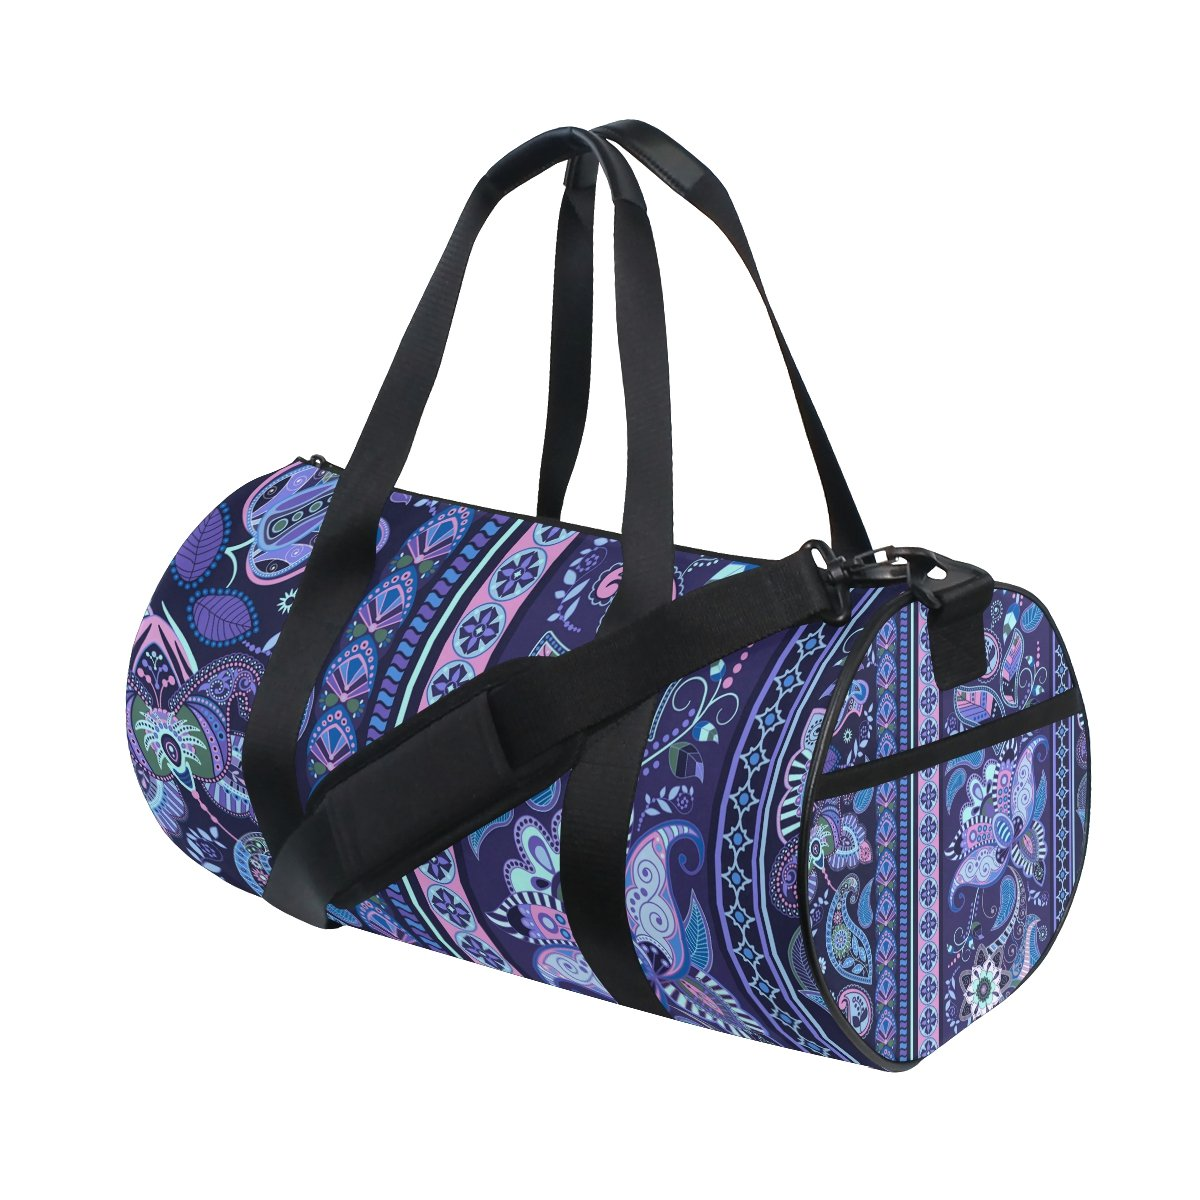 Bohemian Hippie Print Travel Duffel Shoulder Bag, Sports Gym Fitness Bags